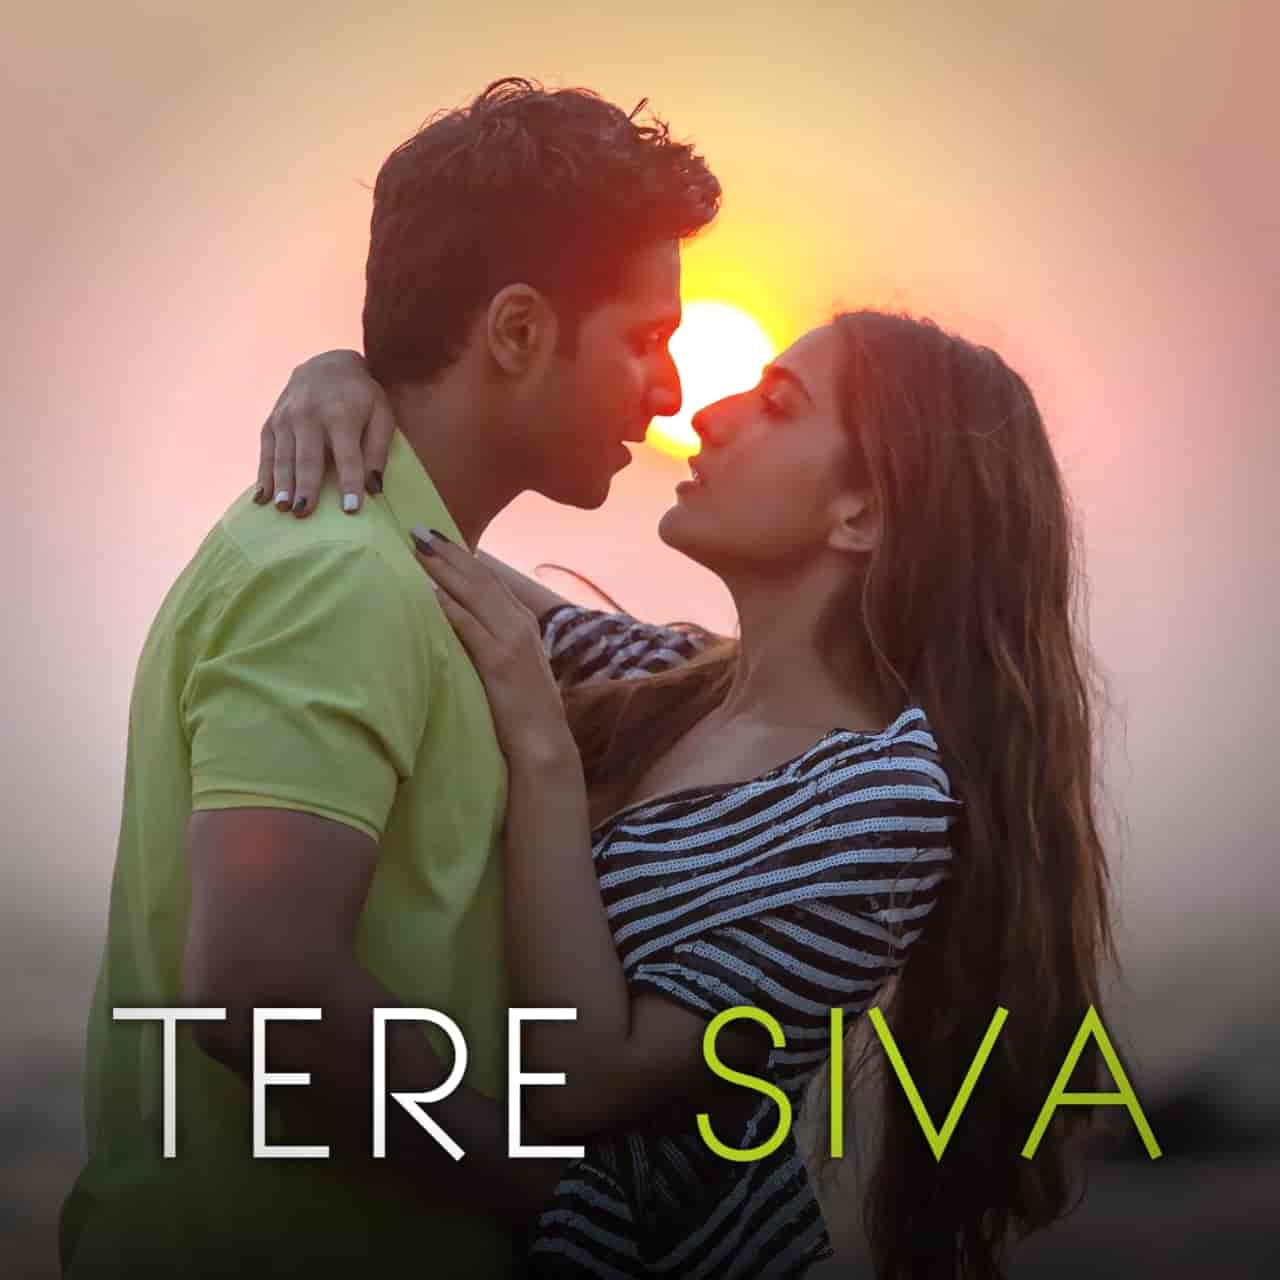 Tere Siva (Coolie No.1) 2020 Hindi Video Song 1080p HDRip Download